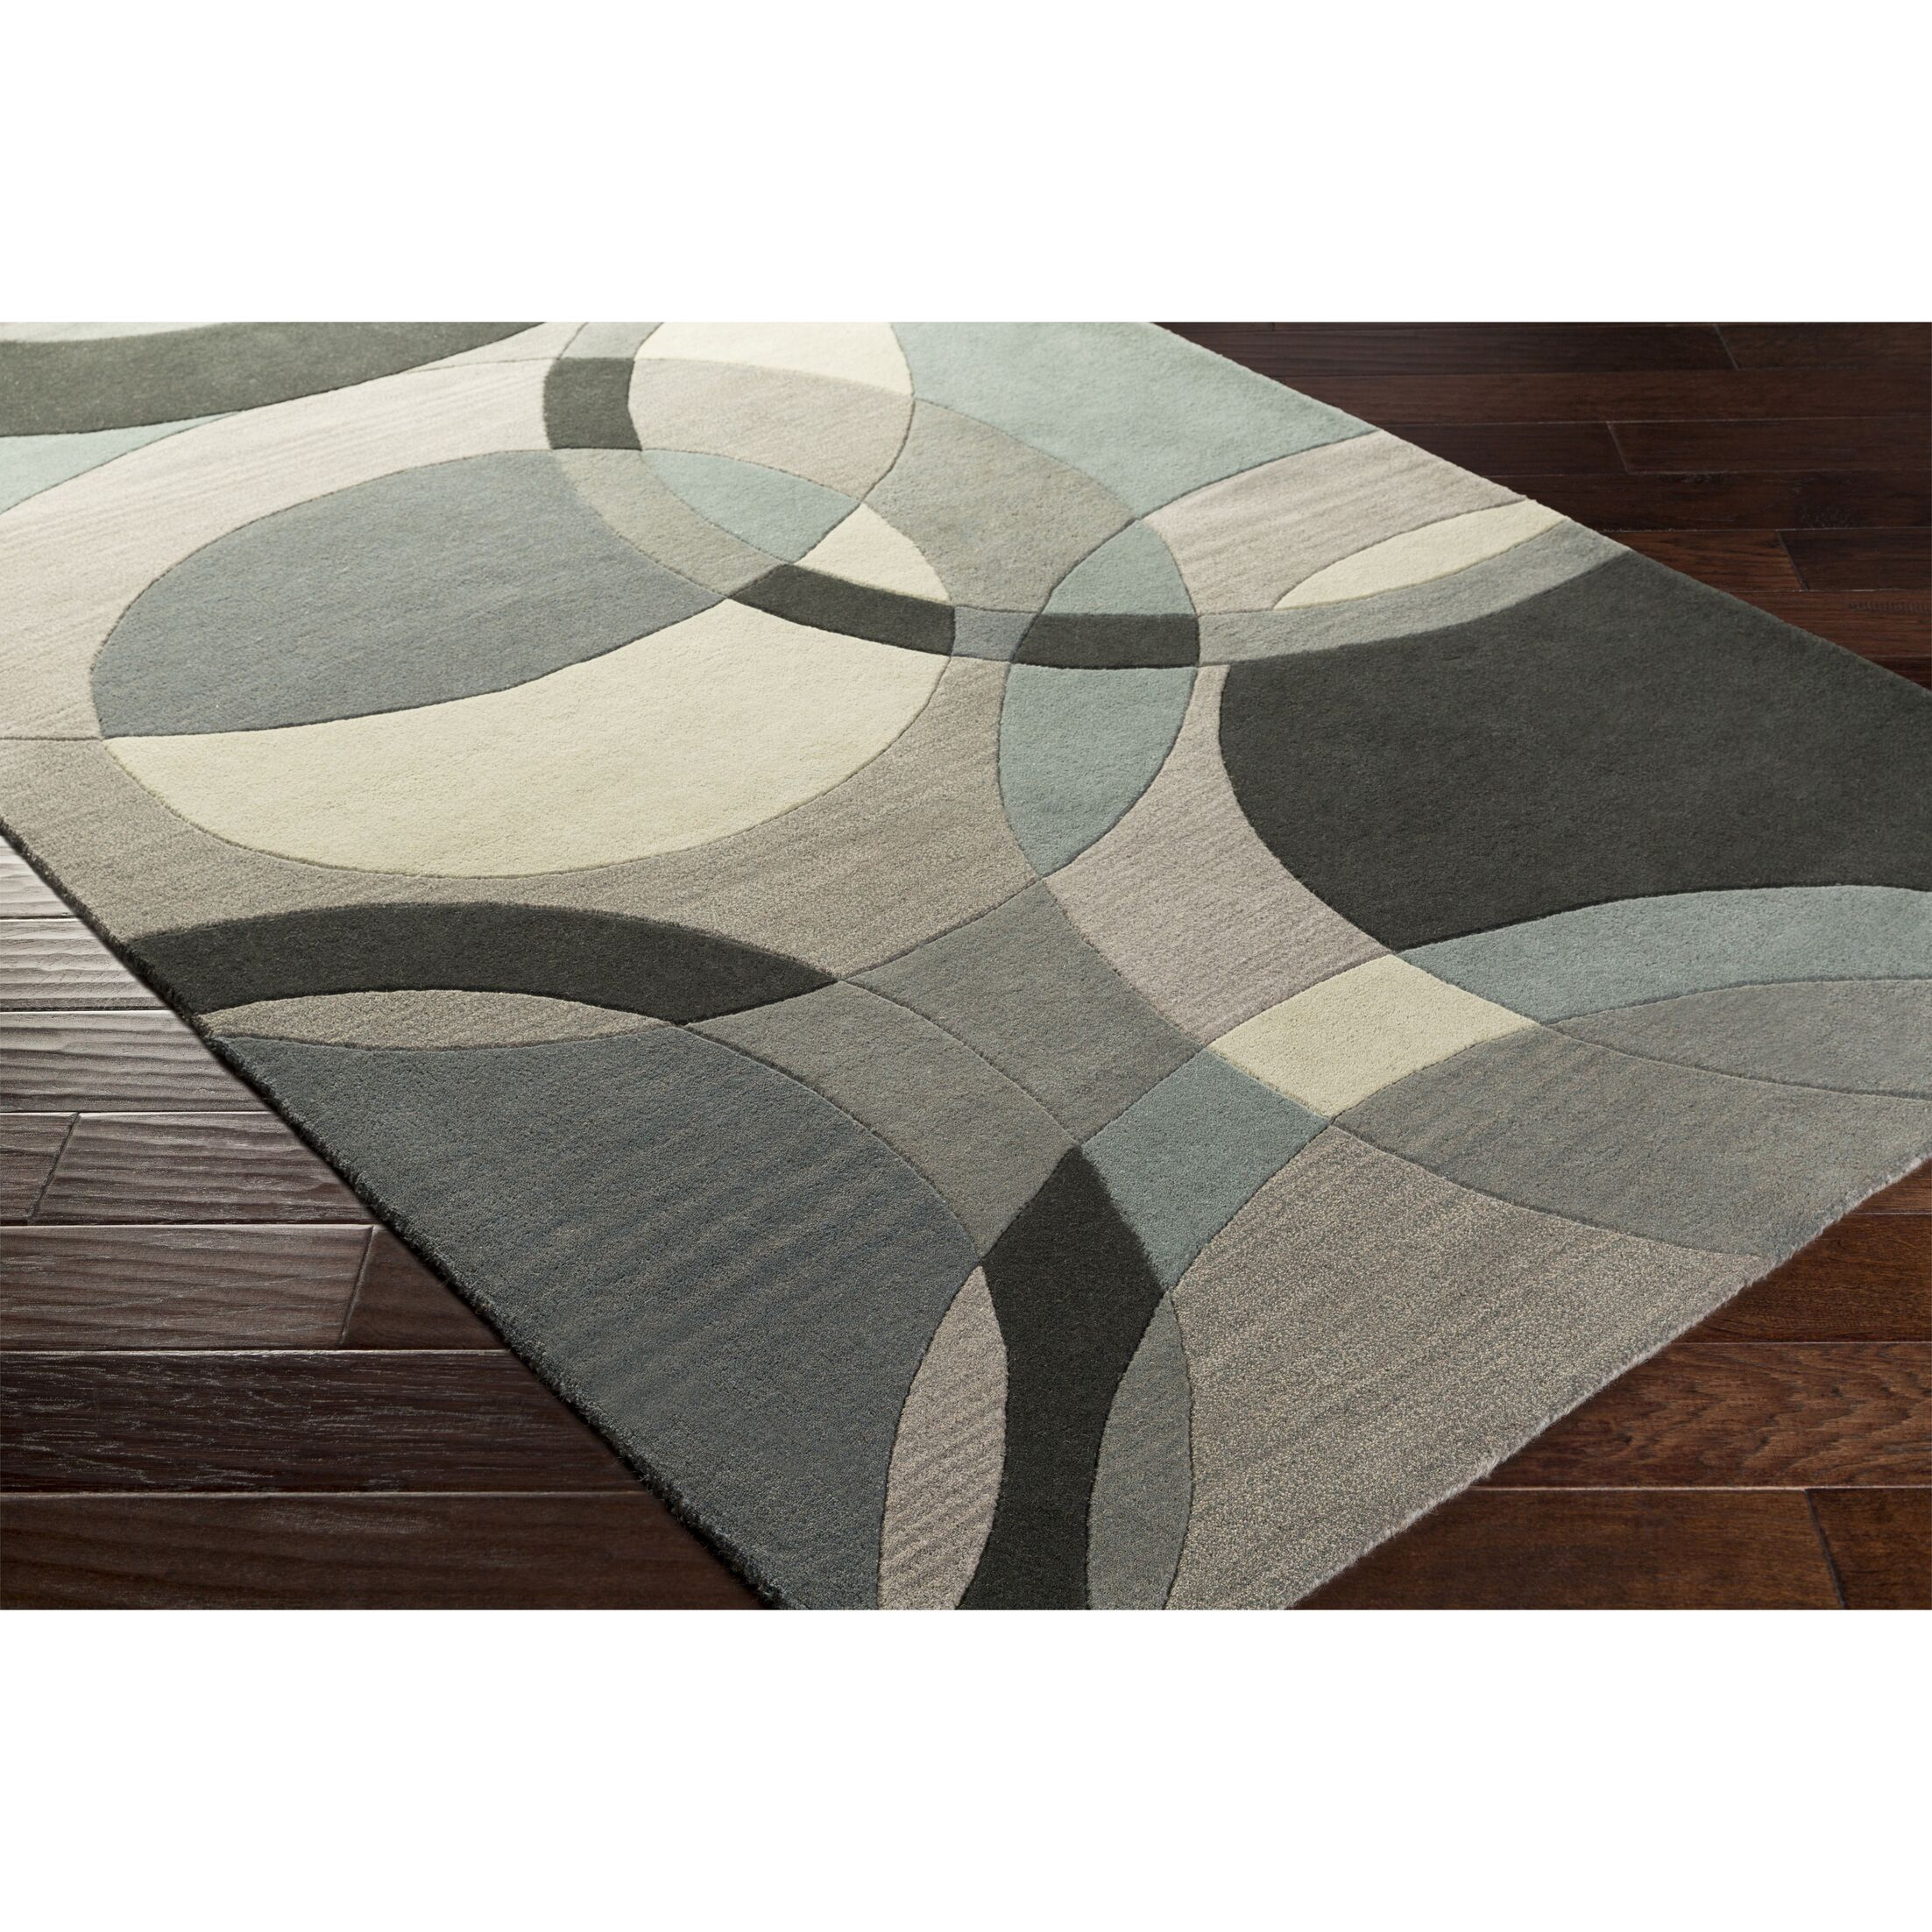 Dewald Hand-Tufted Neutral/Blue Area Rug Rug Size: Rectangle 6' x 9'